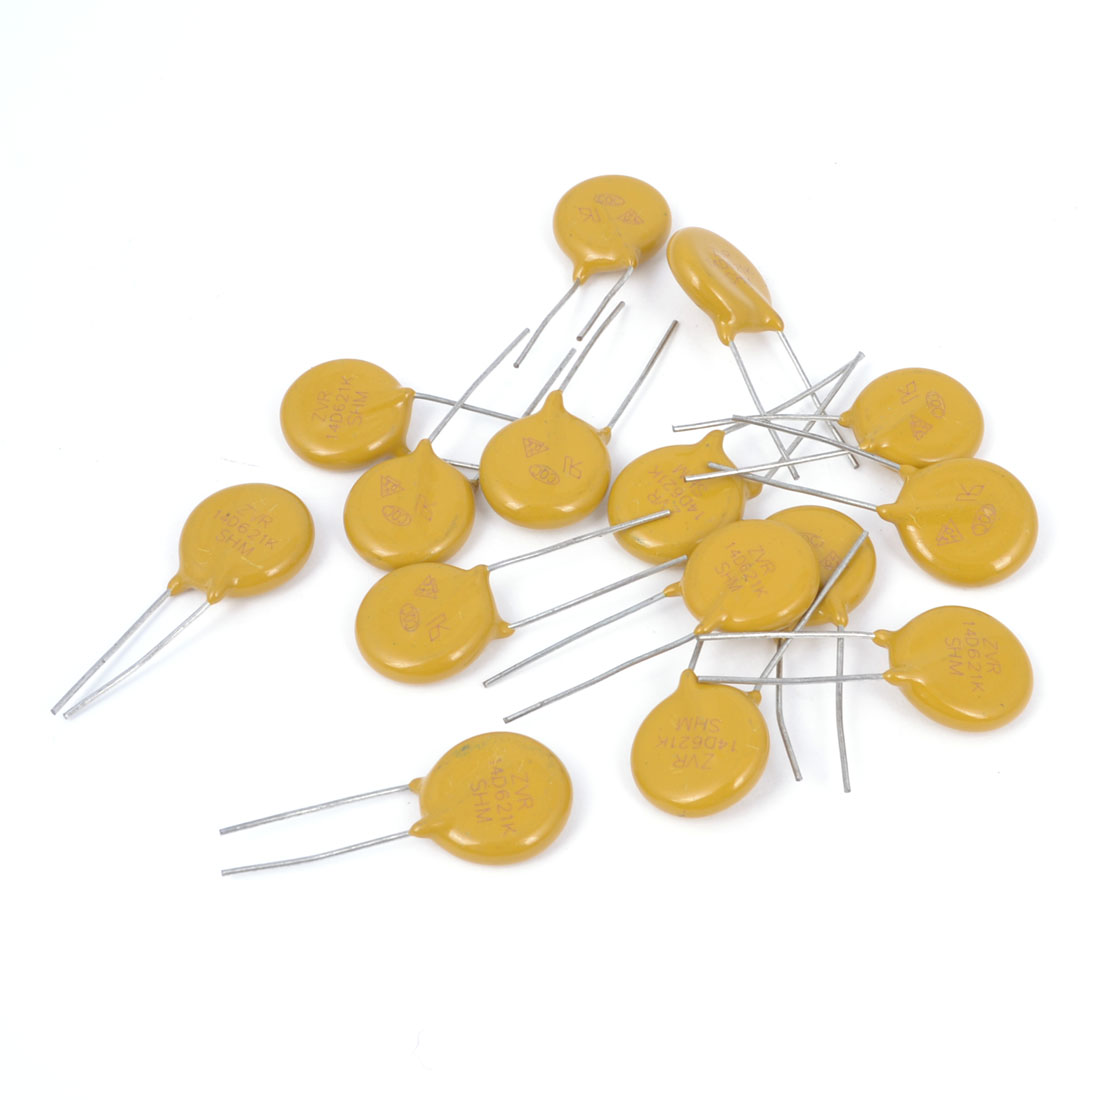 14D621K 620V Voltage Dependent Resistors 25mm Long 15 Pcs